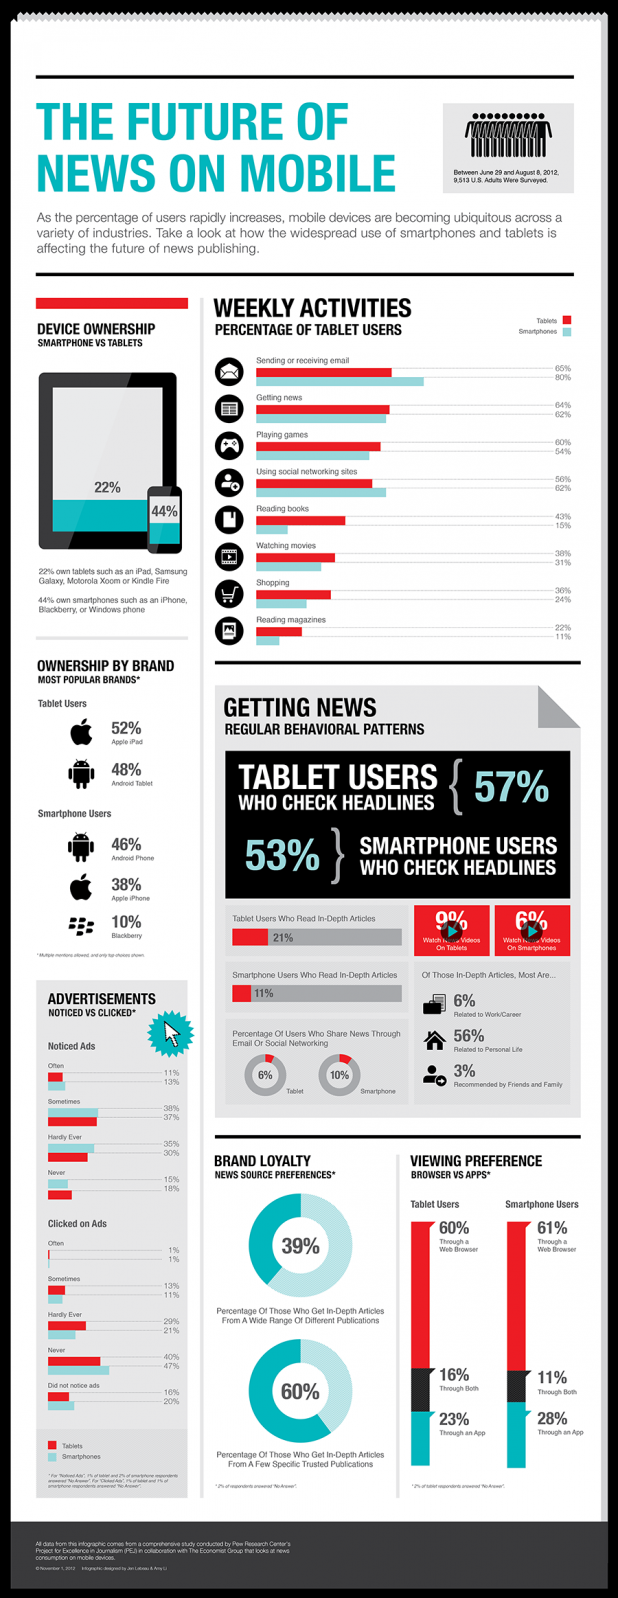 The Future of News on Mobile